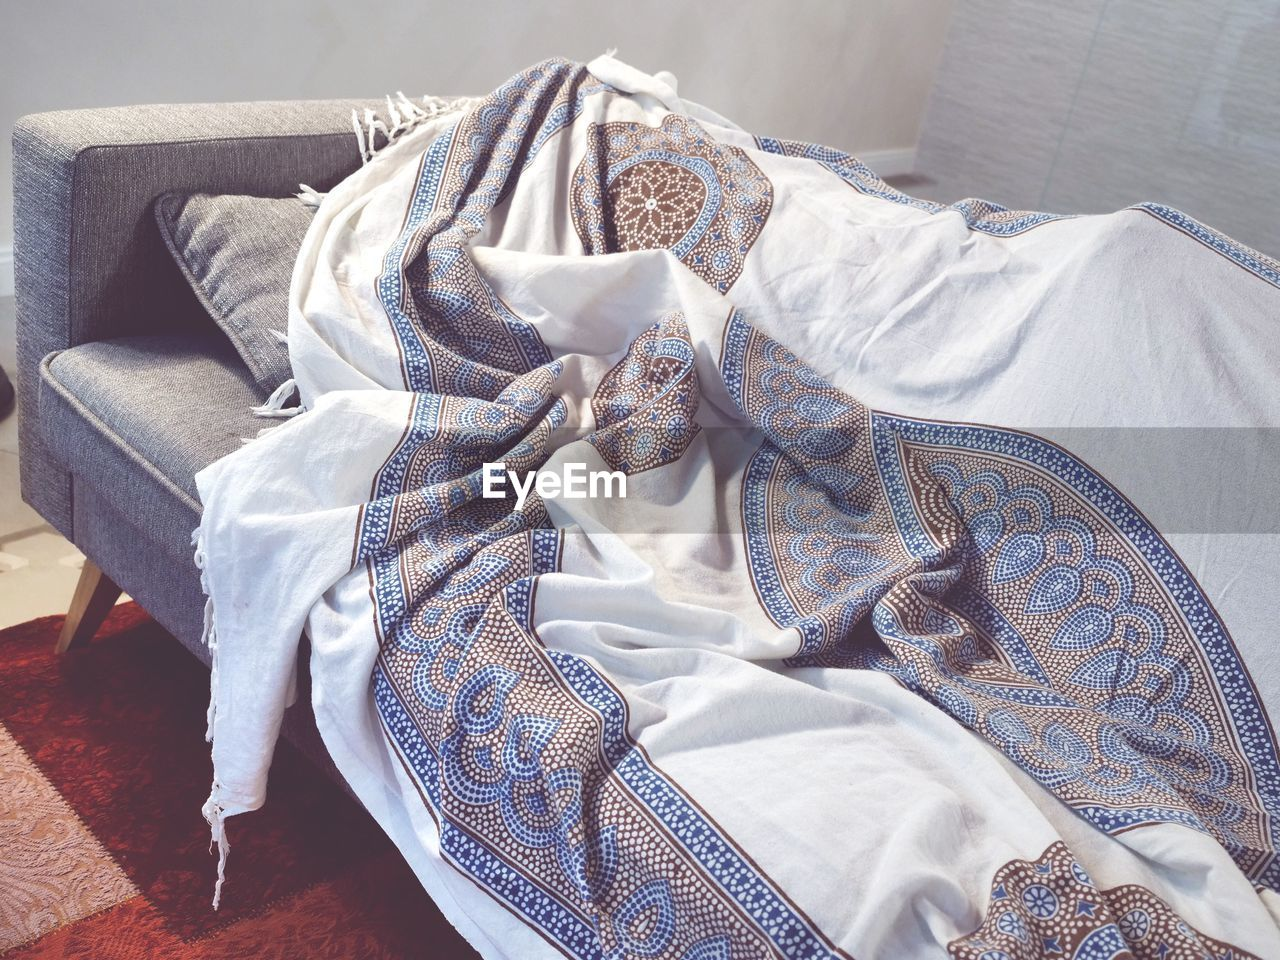 indoors, furniture, textile, bed, no people, relaxation, clothing, still life, pattern, high angle view, home interior, white color, blue, pillow, sheet, comfortable, linen, day, close-up, domestic room, floral pattern, jeans